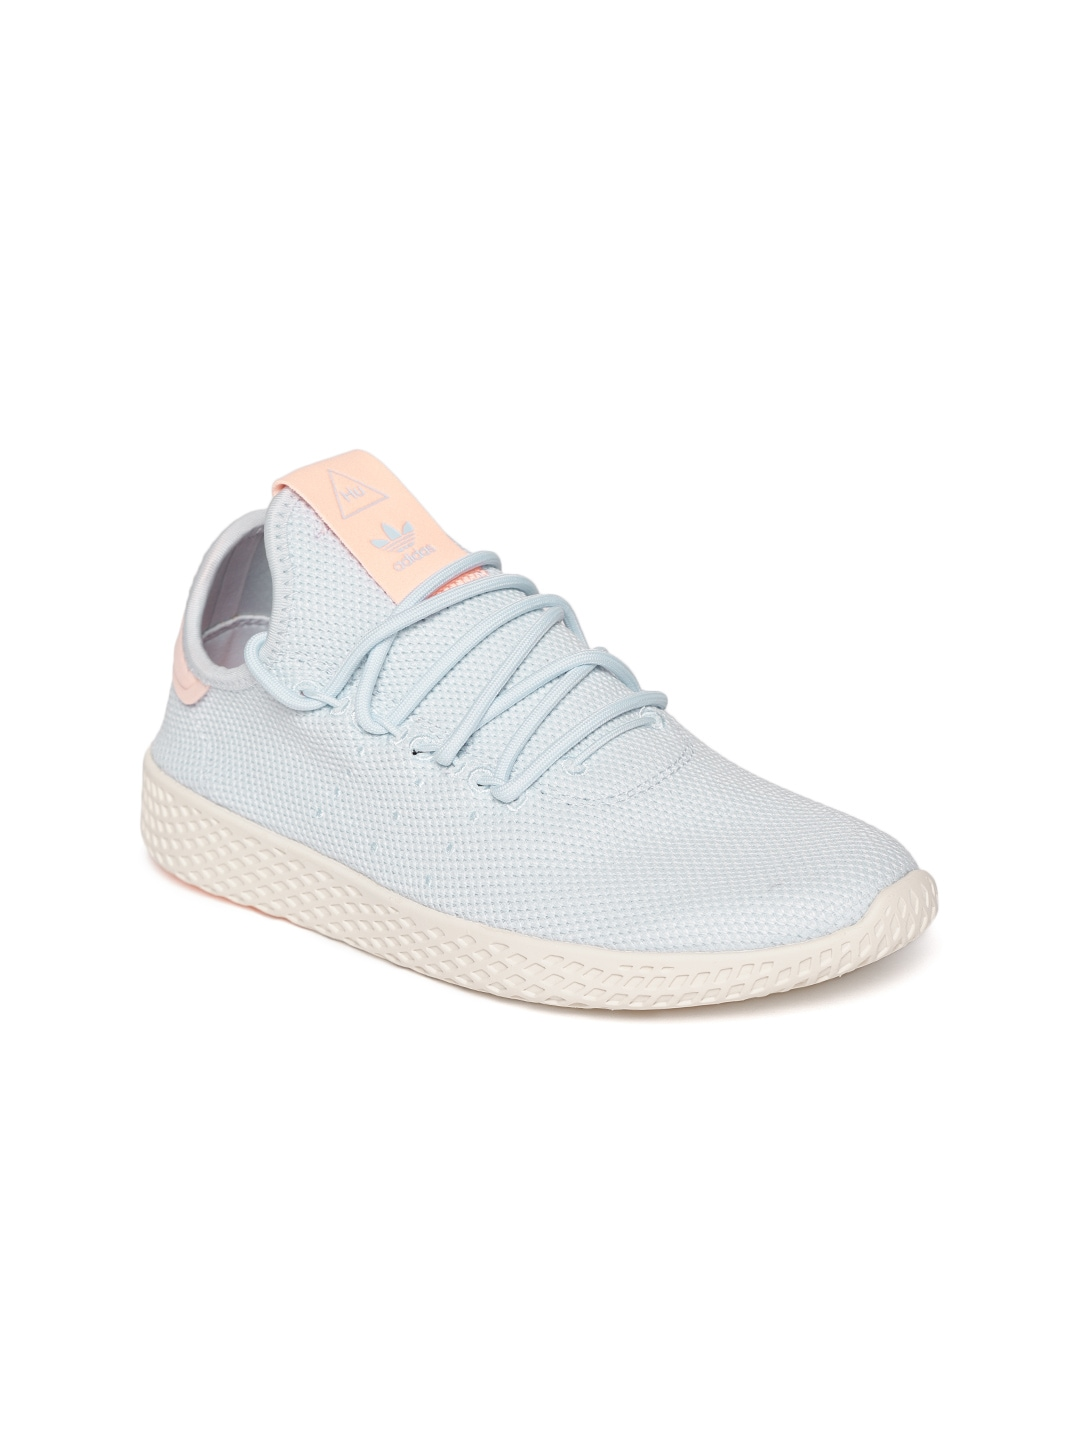 3c924547e16 Adidas Basketball Shoes   Buy Adidas Basketball Shoes Online in India at  Best Price